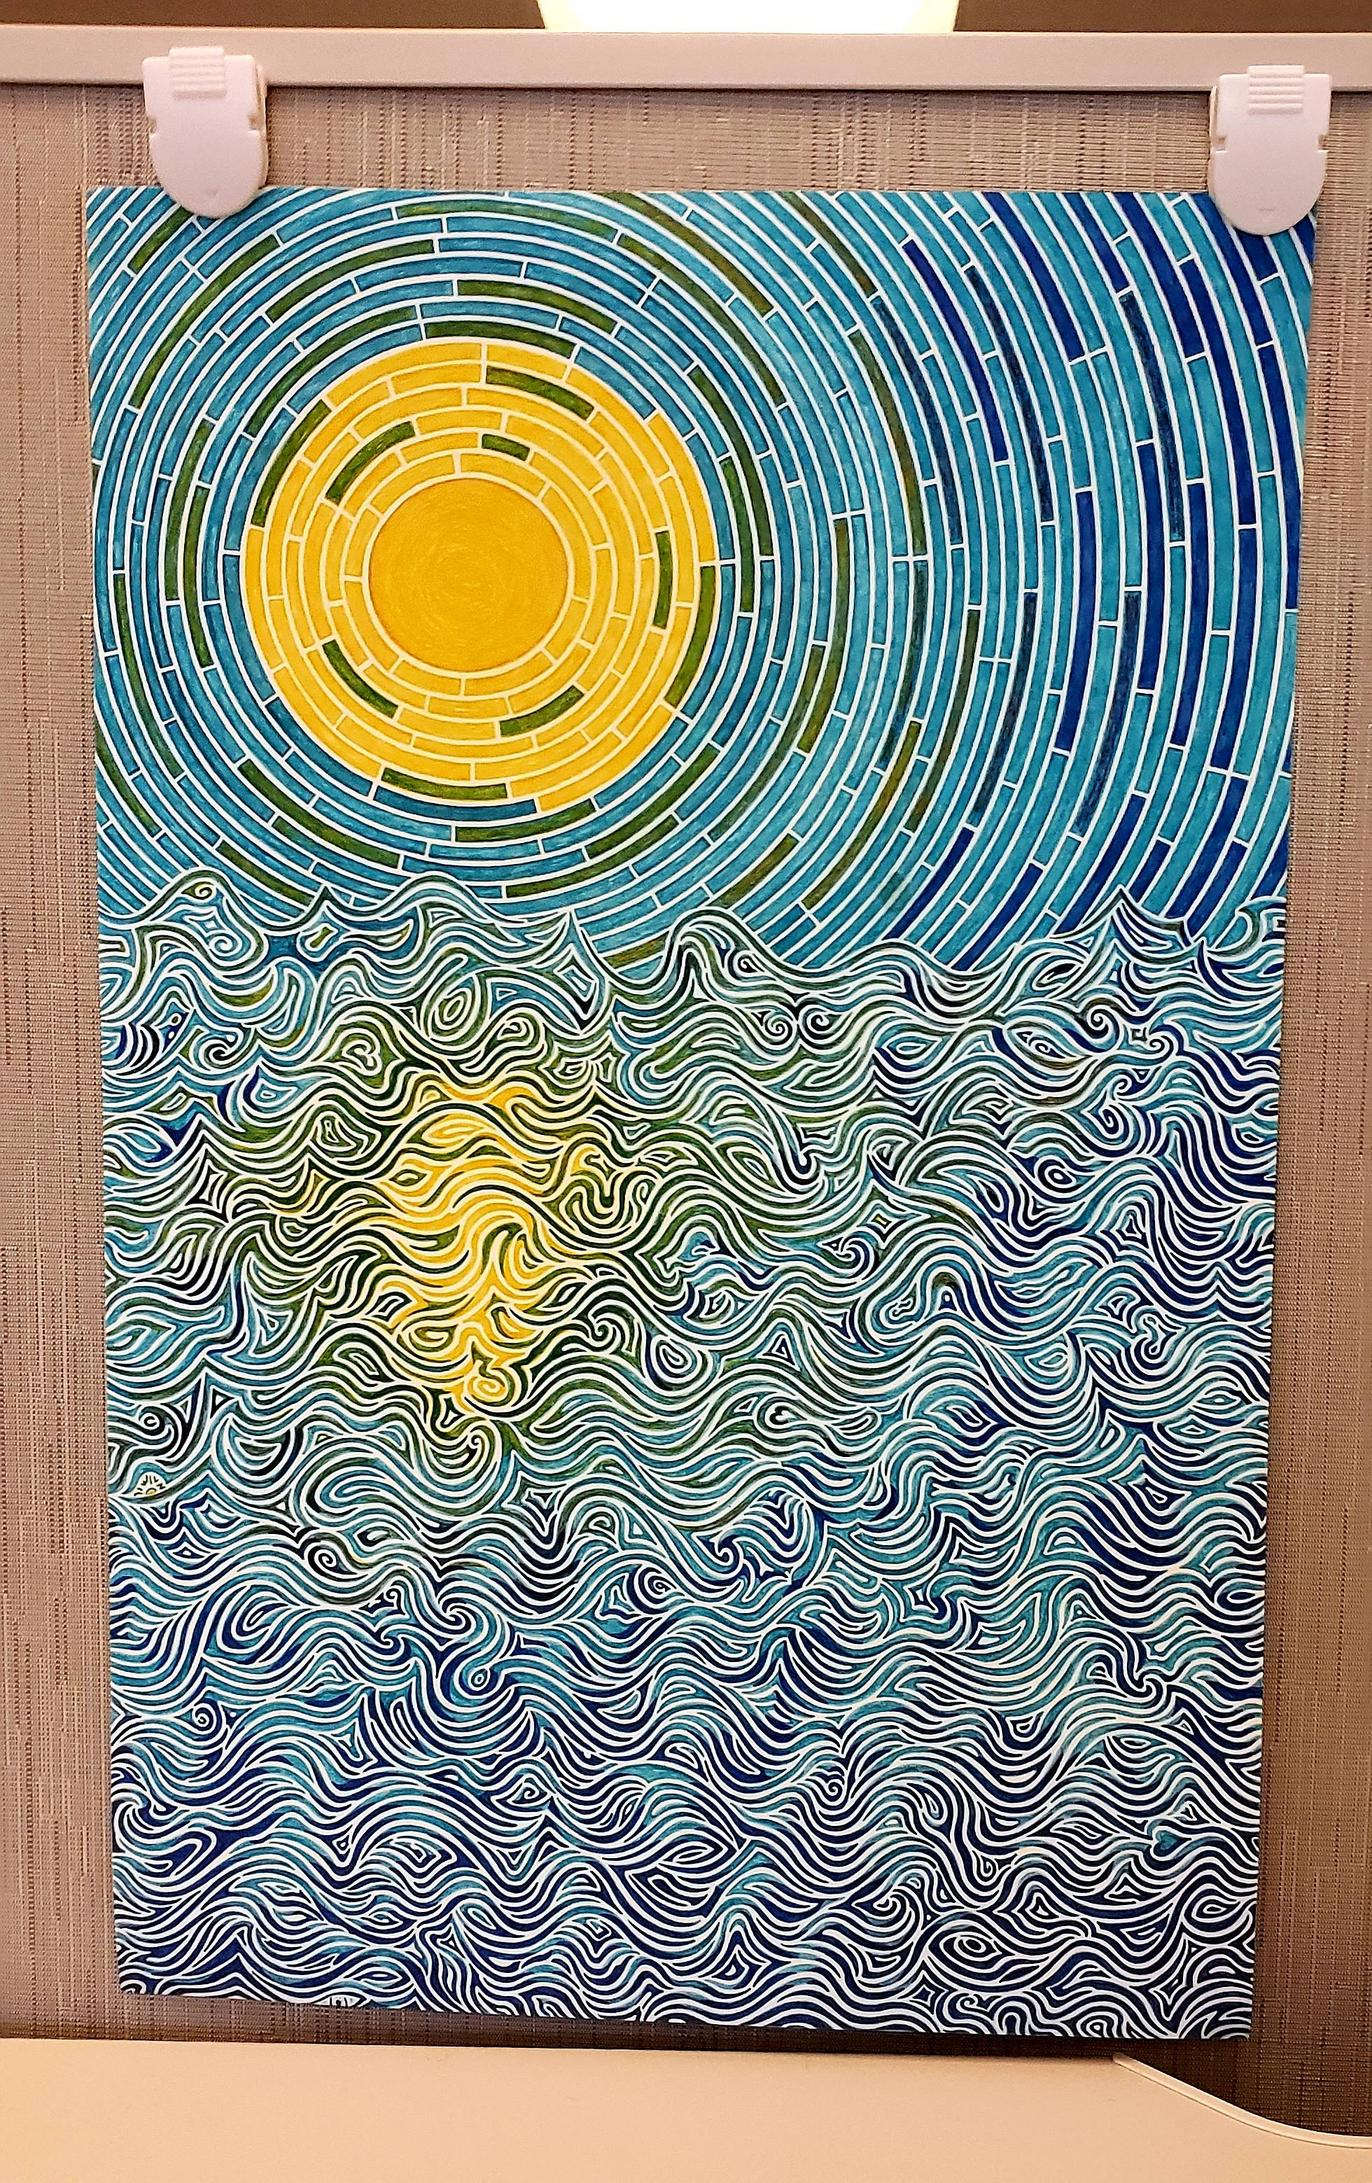 Sun over water, Me, Pen and Ink